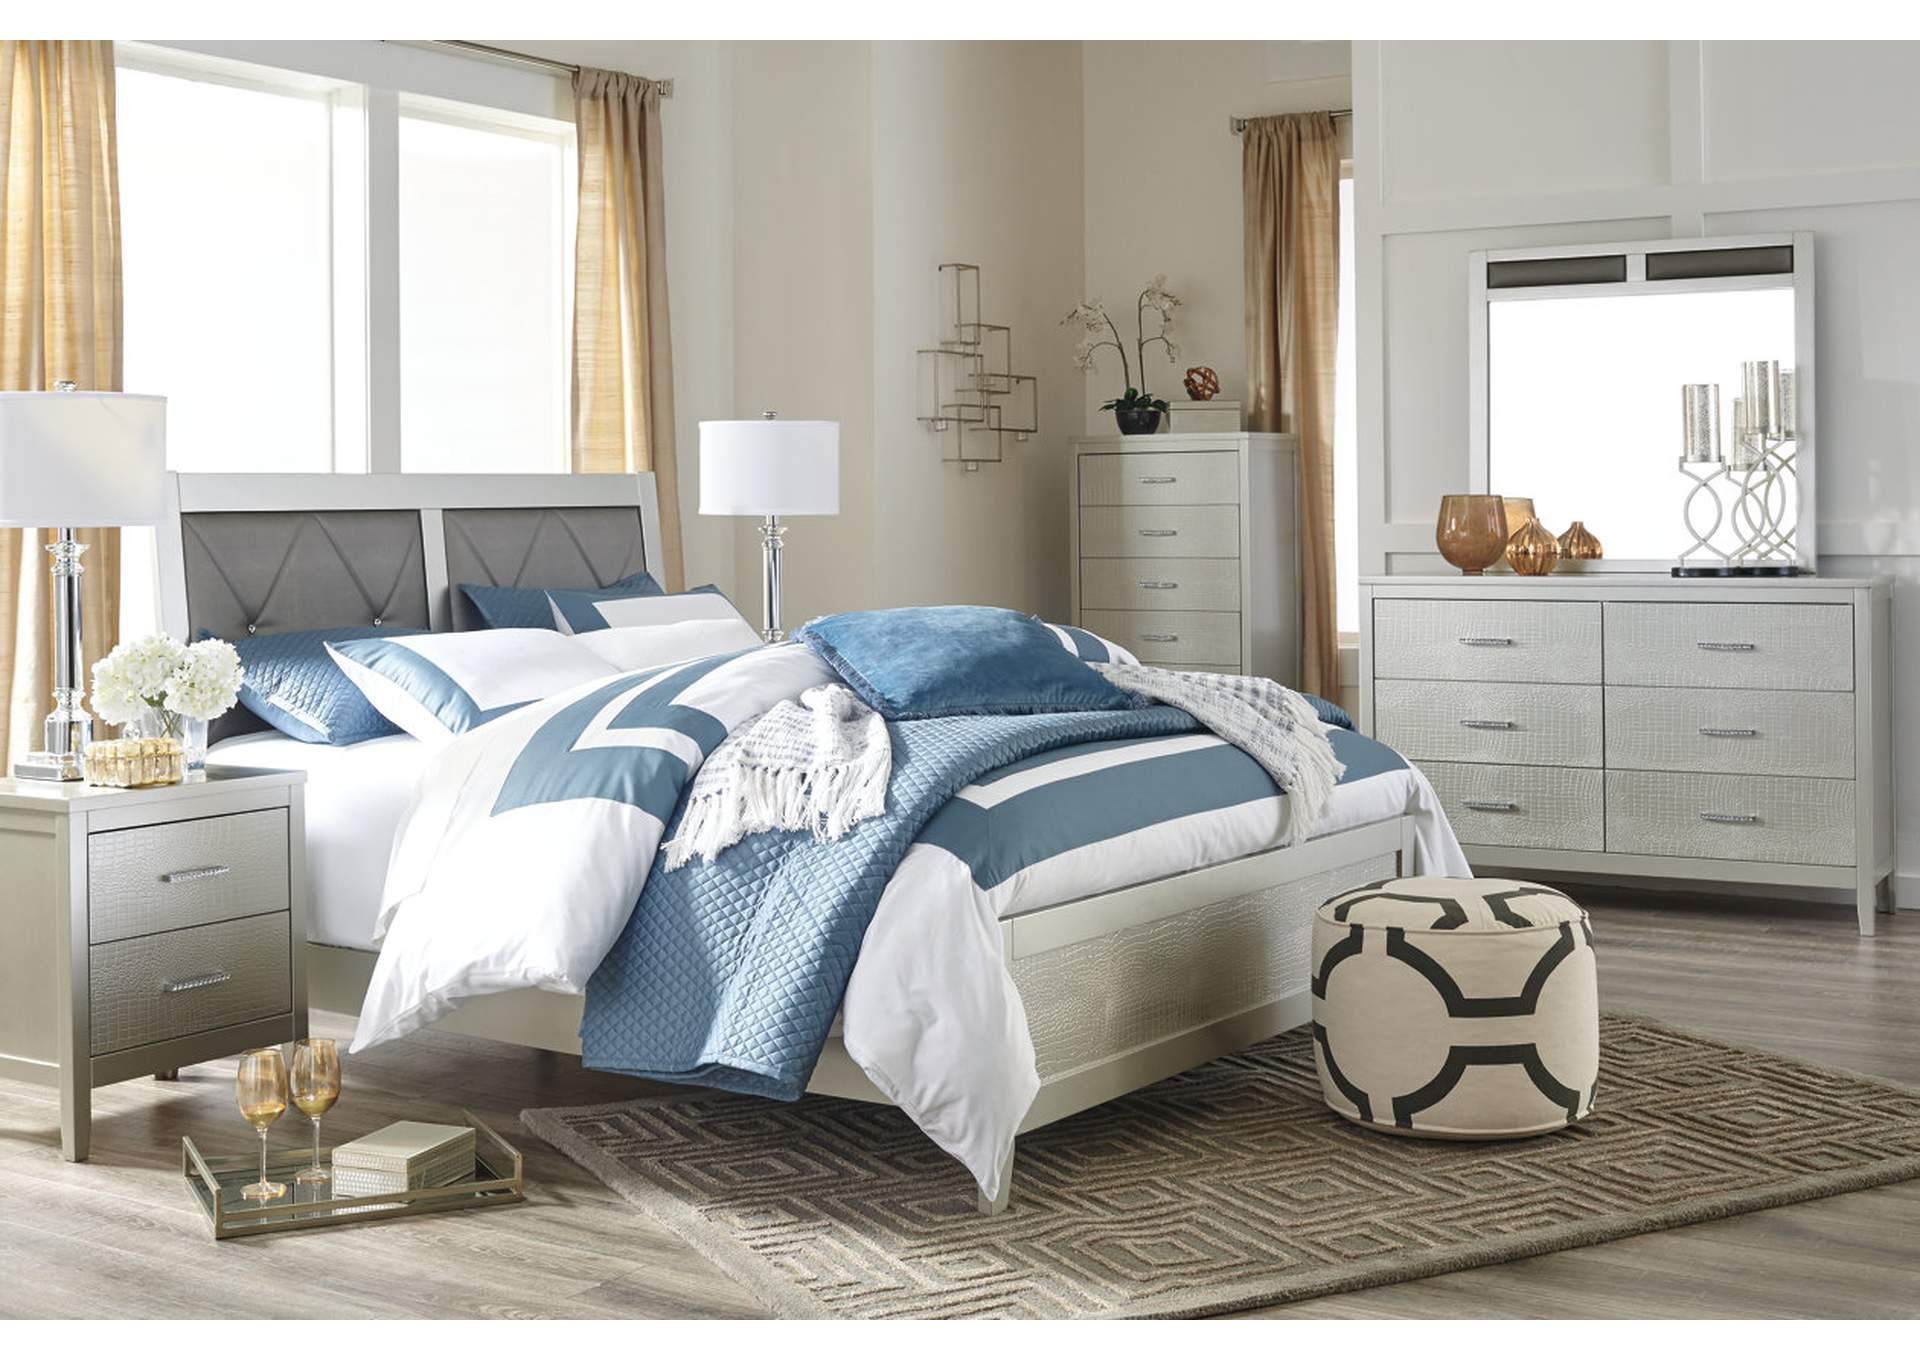 Olivet Silver Queen Upholstered Panel Bed w/Dresser, Mirror & Nightstand,Signature Design By Ashley